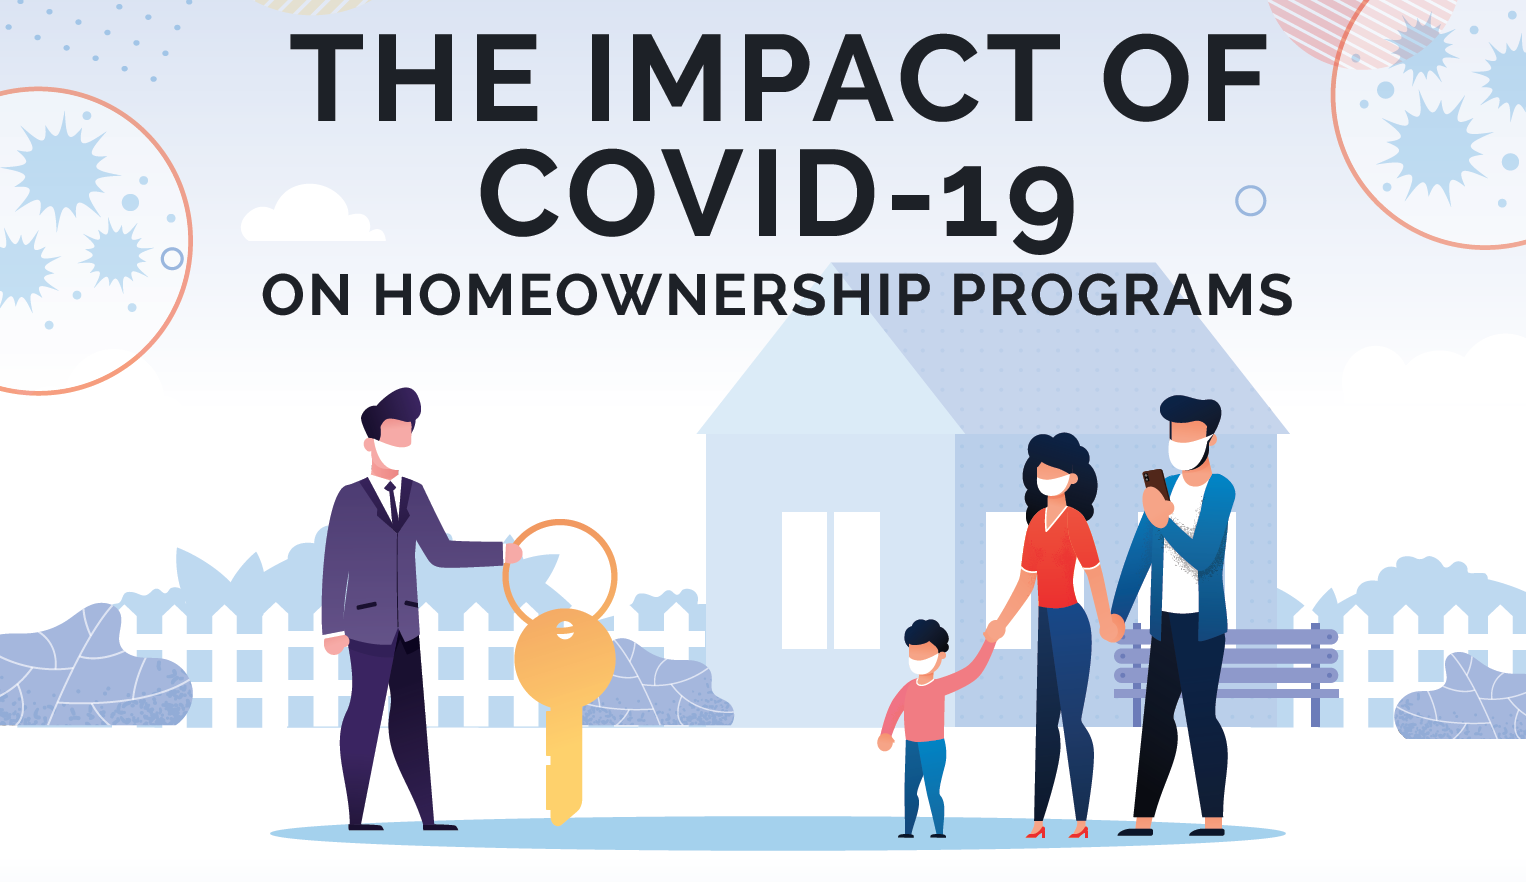 The Impact of COVID-19 on Homeownership Programs